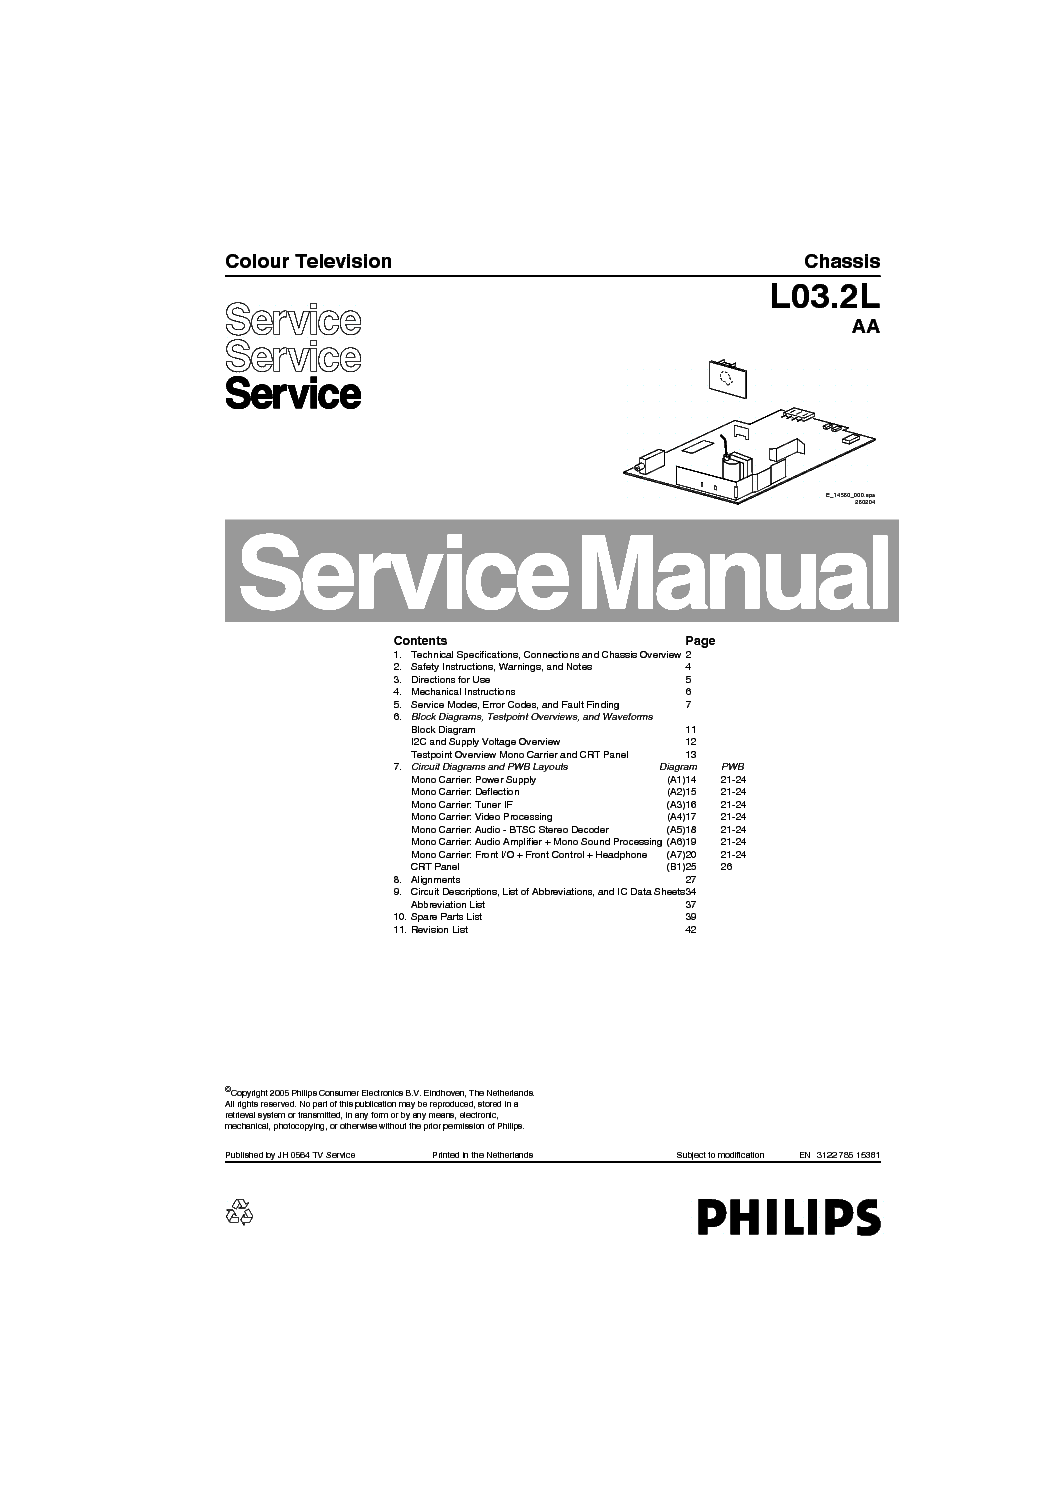 PHILIPS L03.2L-AA-CHASIS service manual